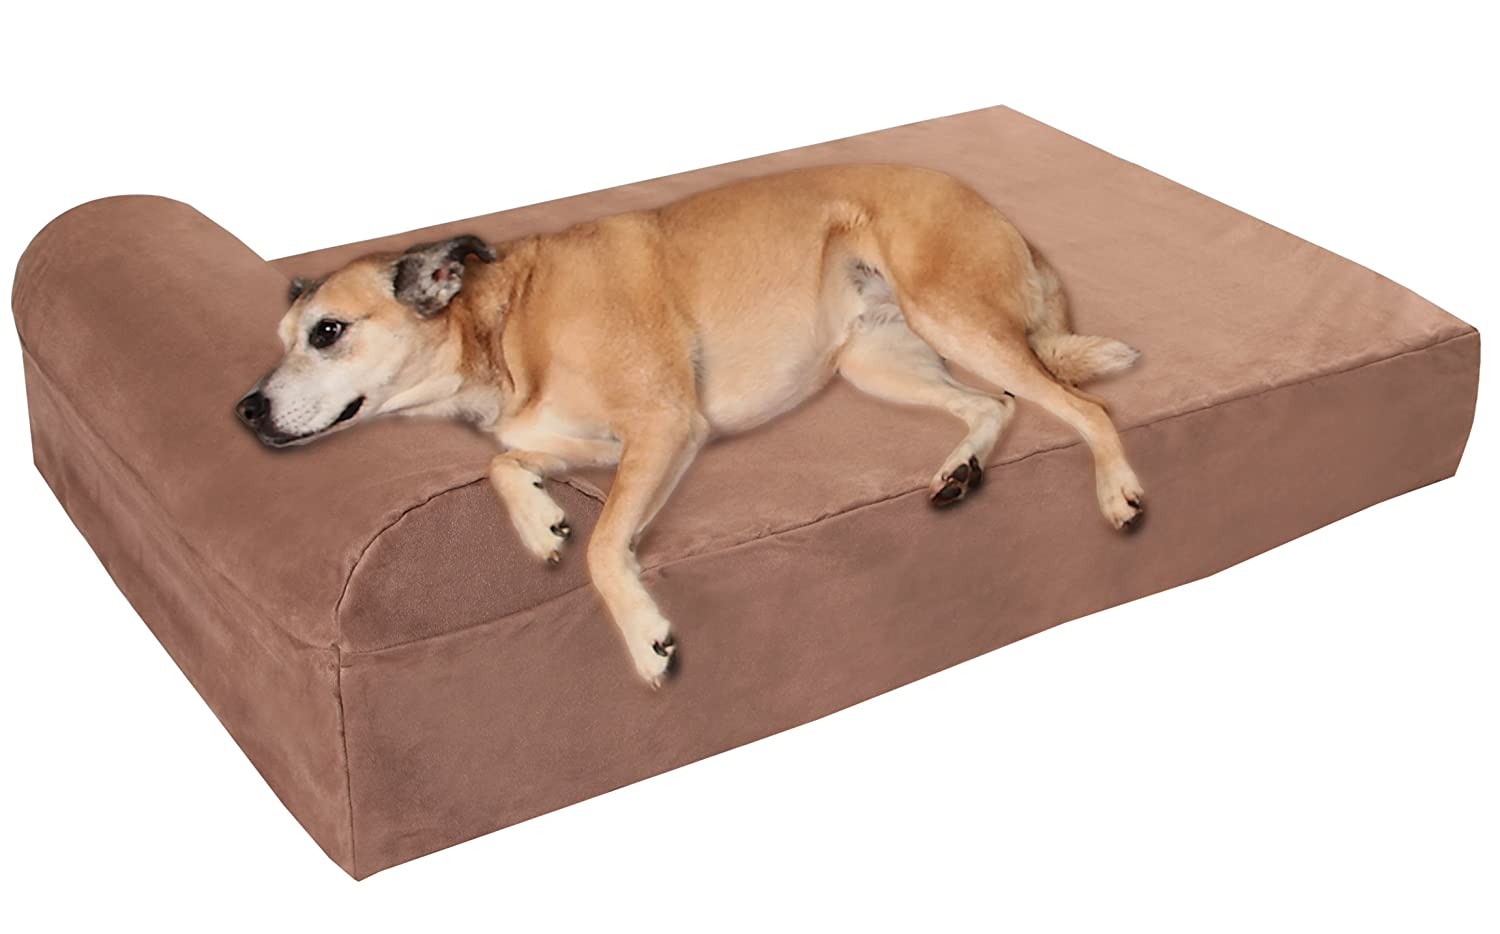 big barker 7 inch pillow top orthopedic dog bed